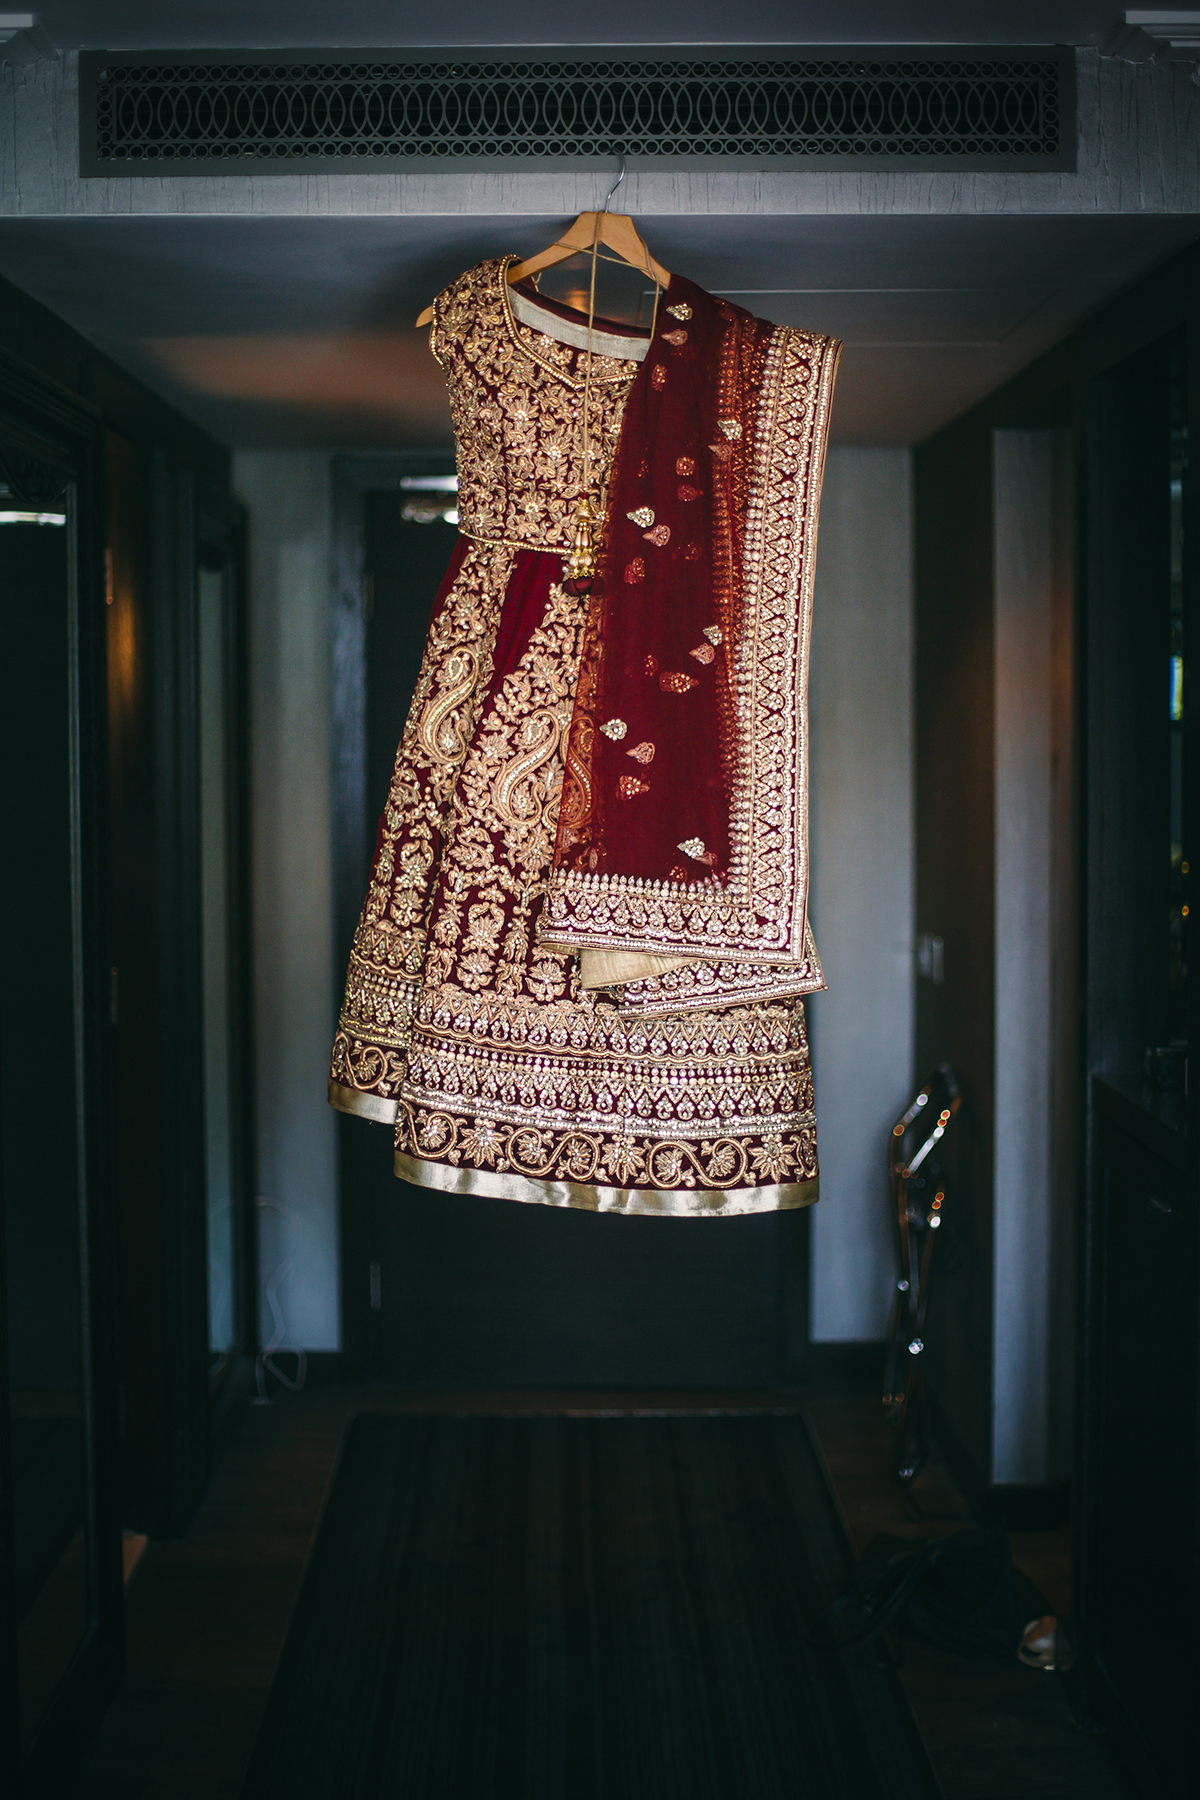 Wedding photographer London Indian bridal gown